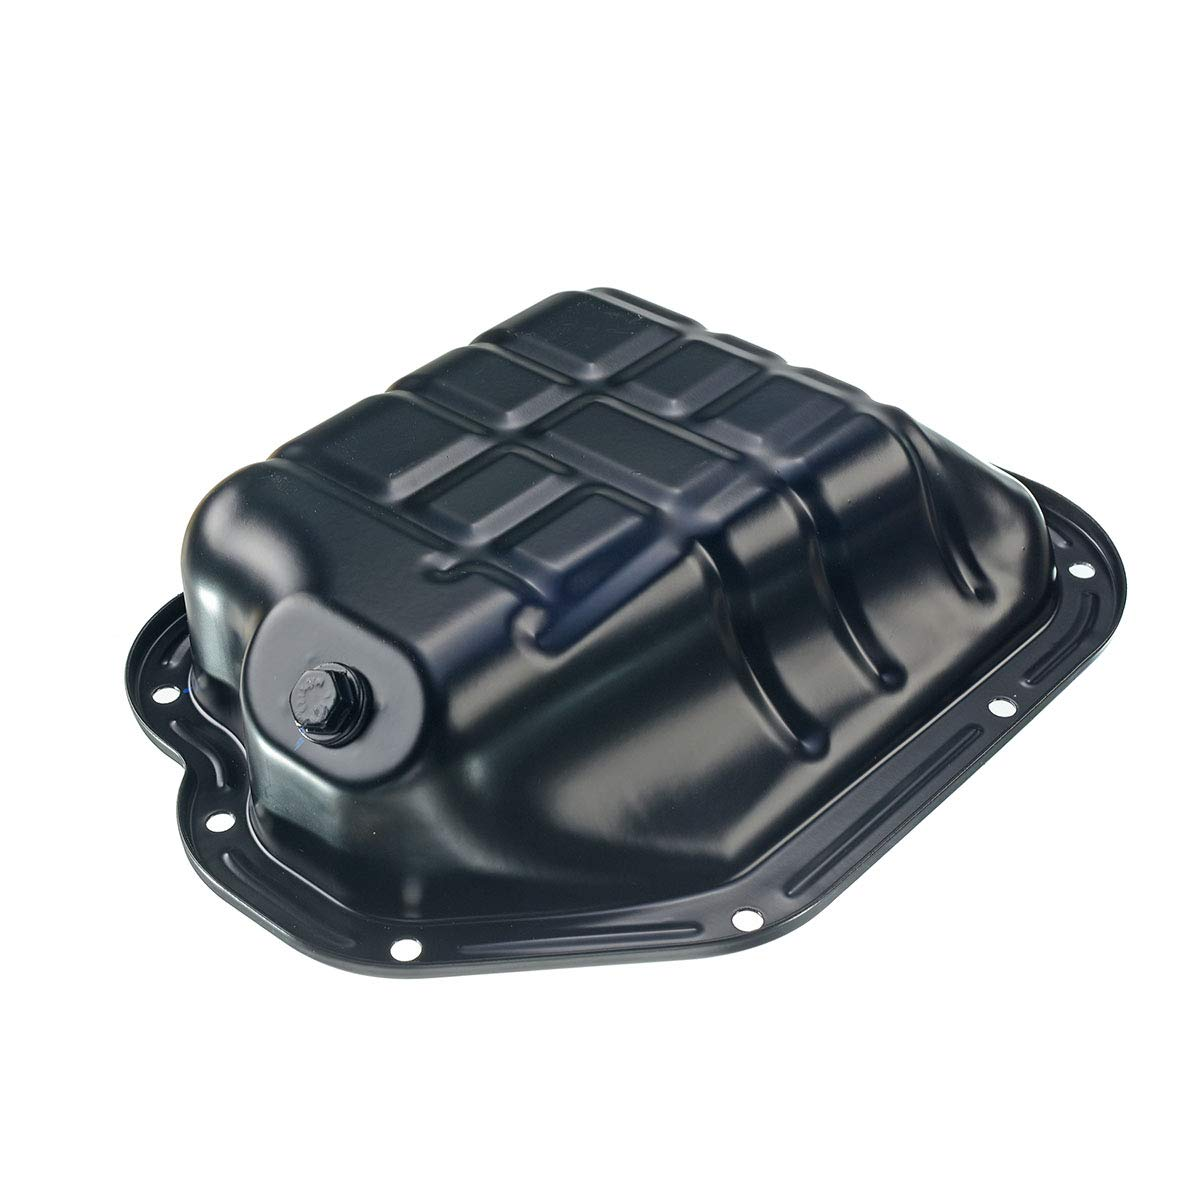 A-Premium Lower Engine Oil Pan for Nissan Maxima 2008-2018 V6 3.5L